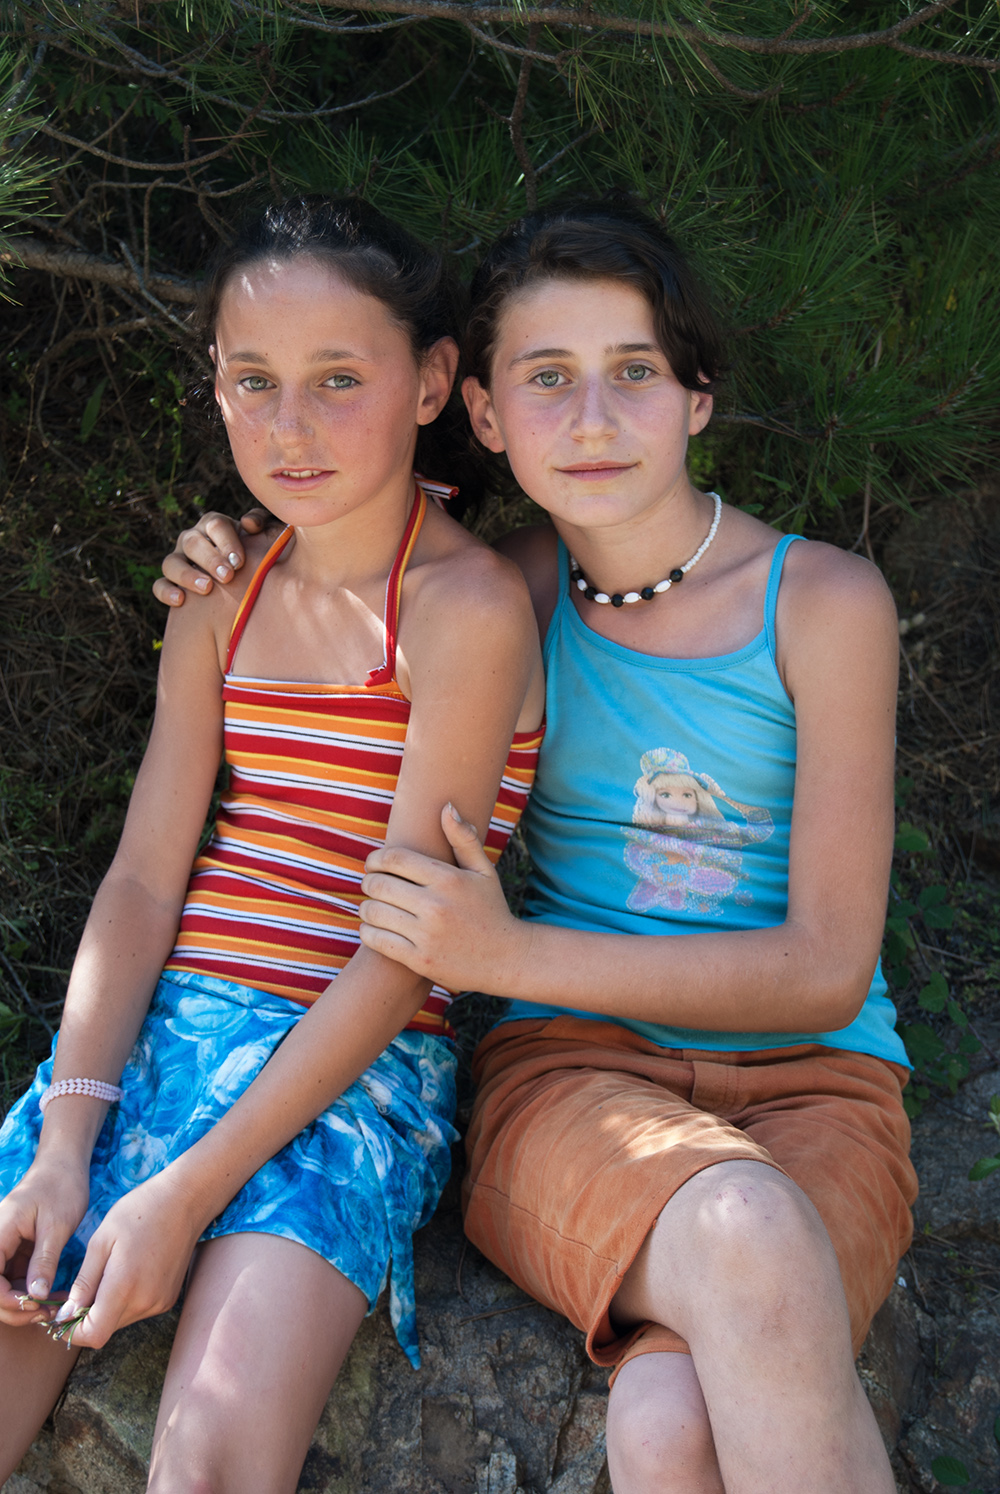 Portrait of two Girls, Orosh Mirditë, © alketa misja photography 2008